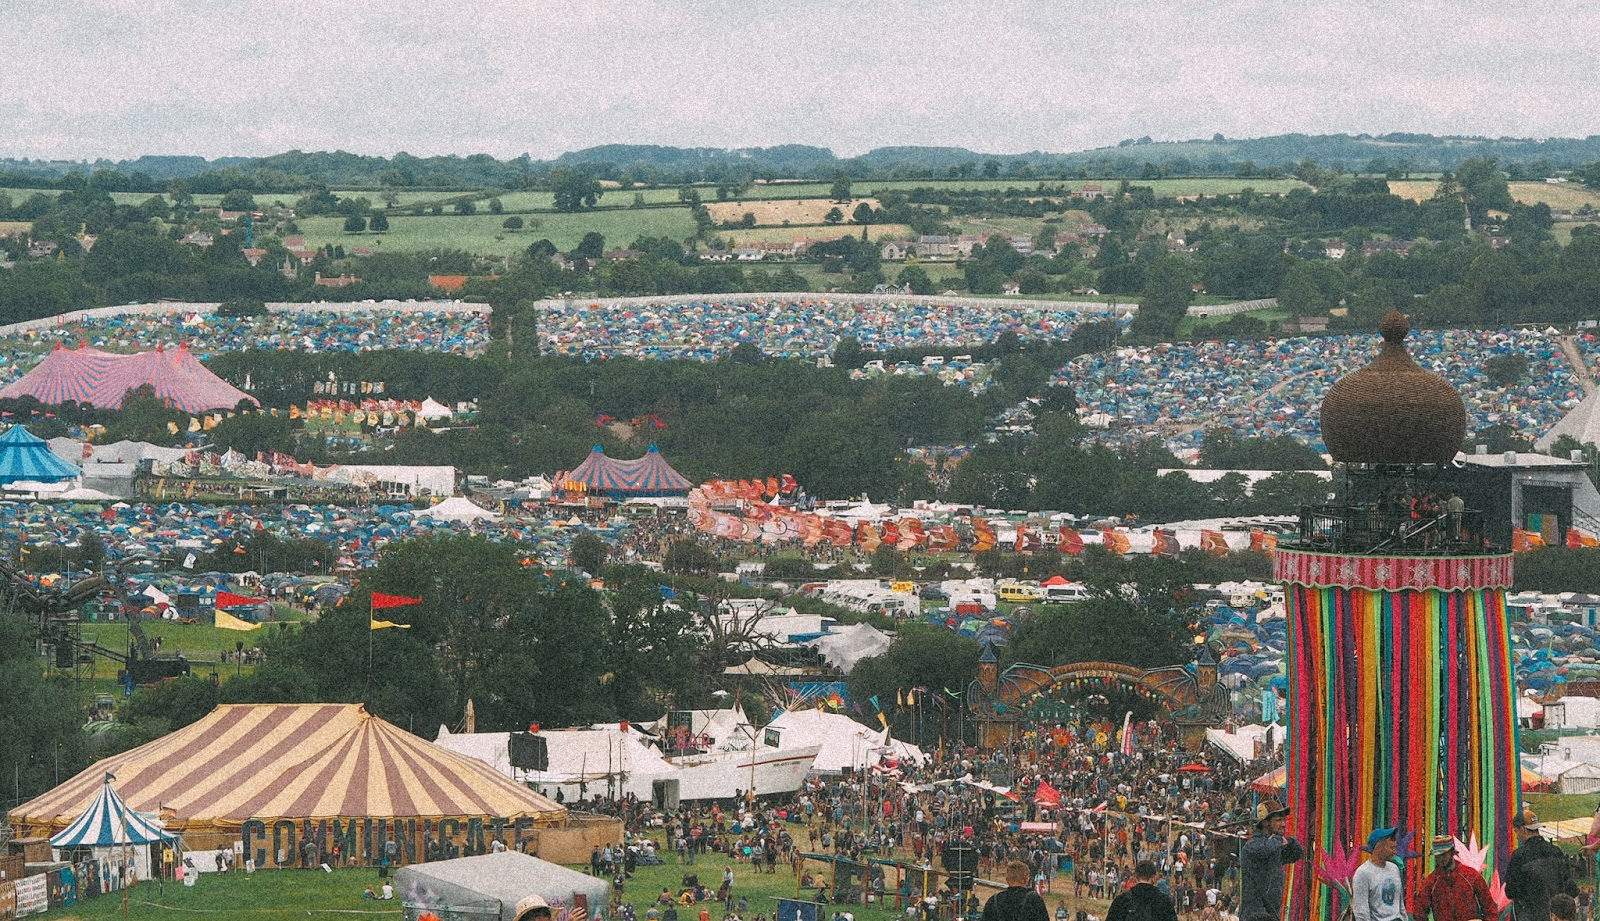 POSTCARDS FROM GLASTONBURY - FIVE THINGS I LEARNT DURING MY FIRST TIME THERE